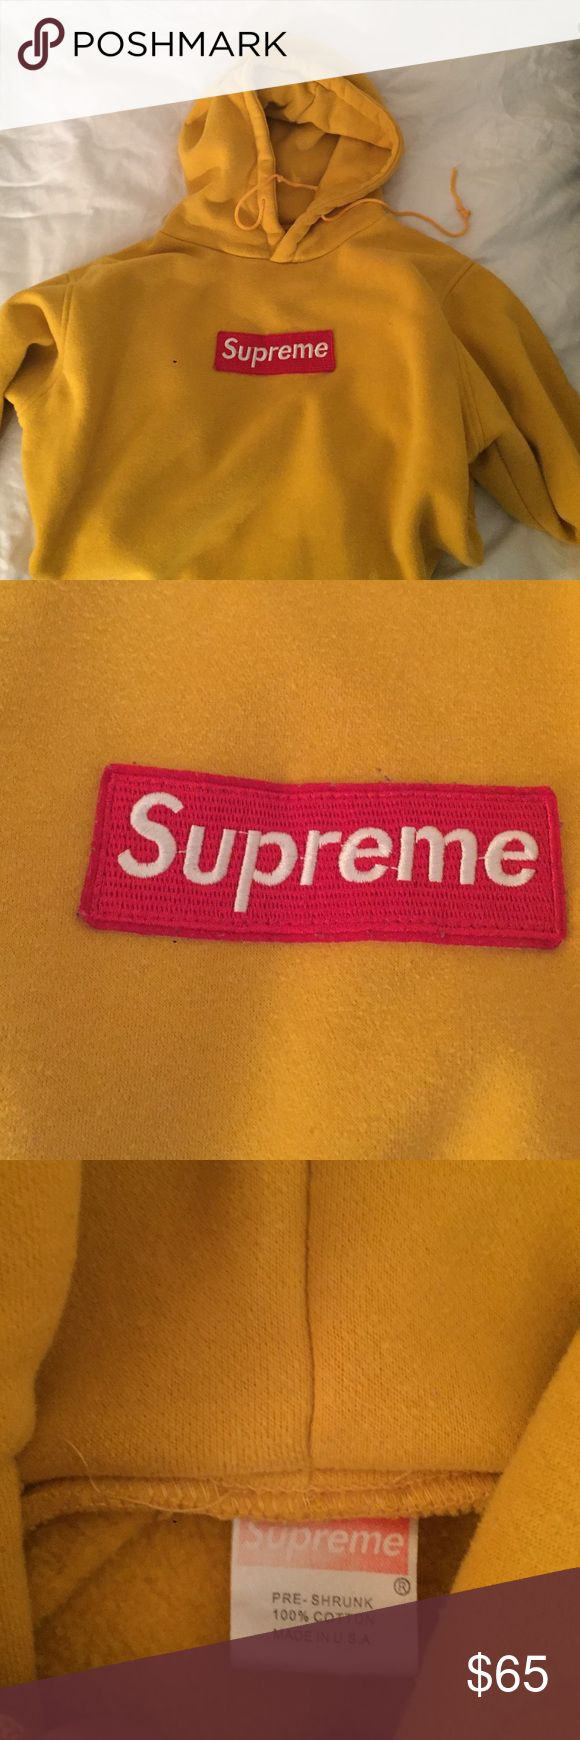 Supreme Hoodie *Pre-owned* Lightly worn Supreme Box Logo Hoodie Size Medium This was a gift so I cannot guarantee auth.  **Please review all pictures before purchasing** Supreme Tops Sweatshirts & Hoodies